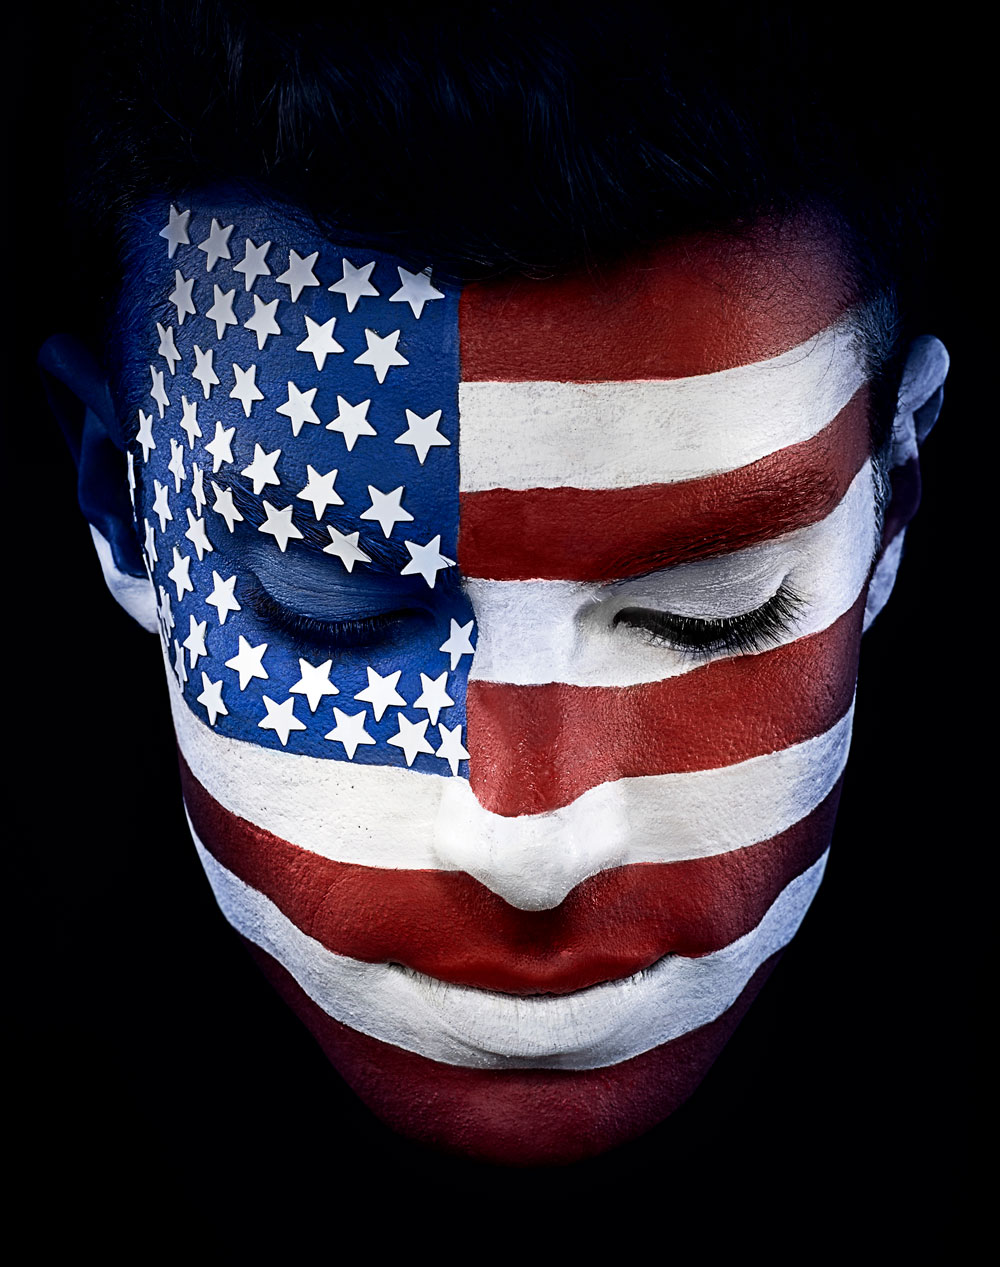 Man's Face Painted as the United States' Flag